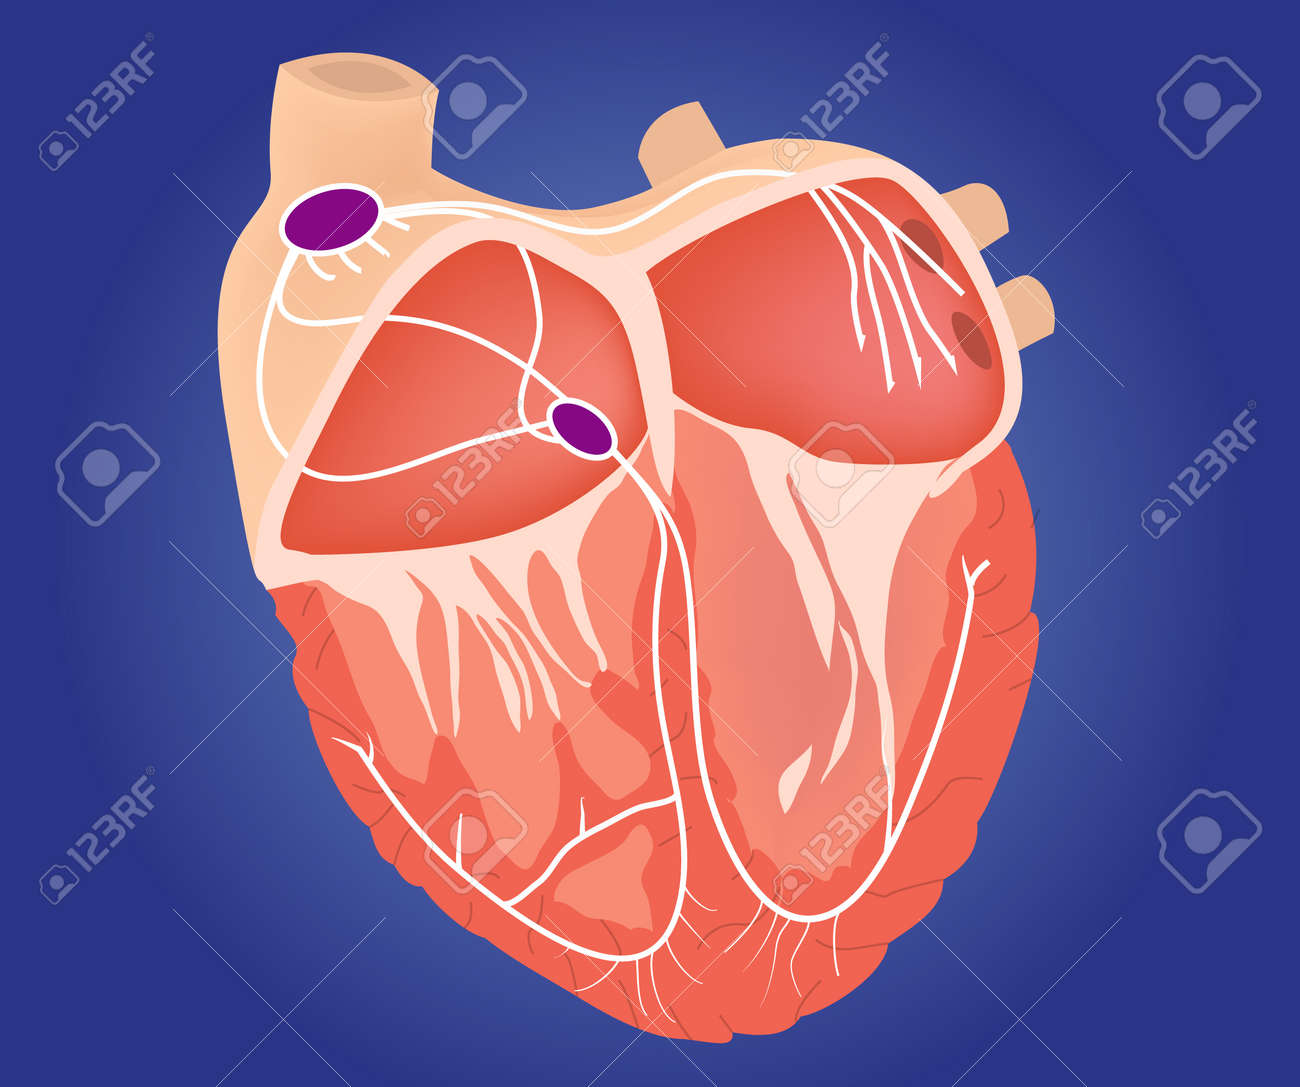 Heart Conduction System Illustration. Heart Chambers With Cardiac ...